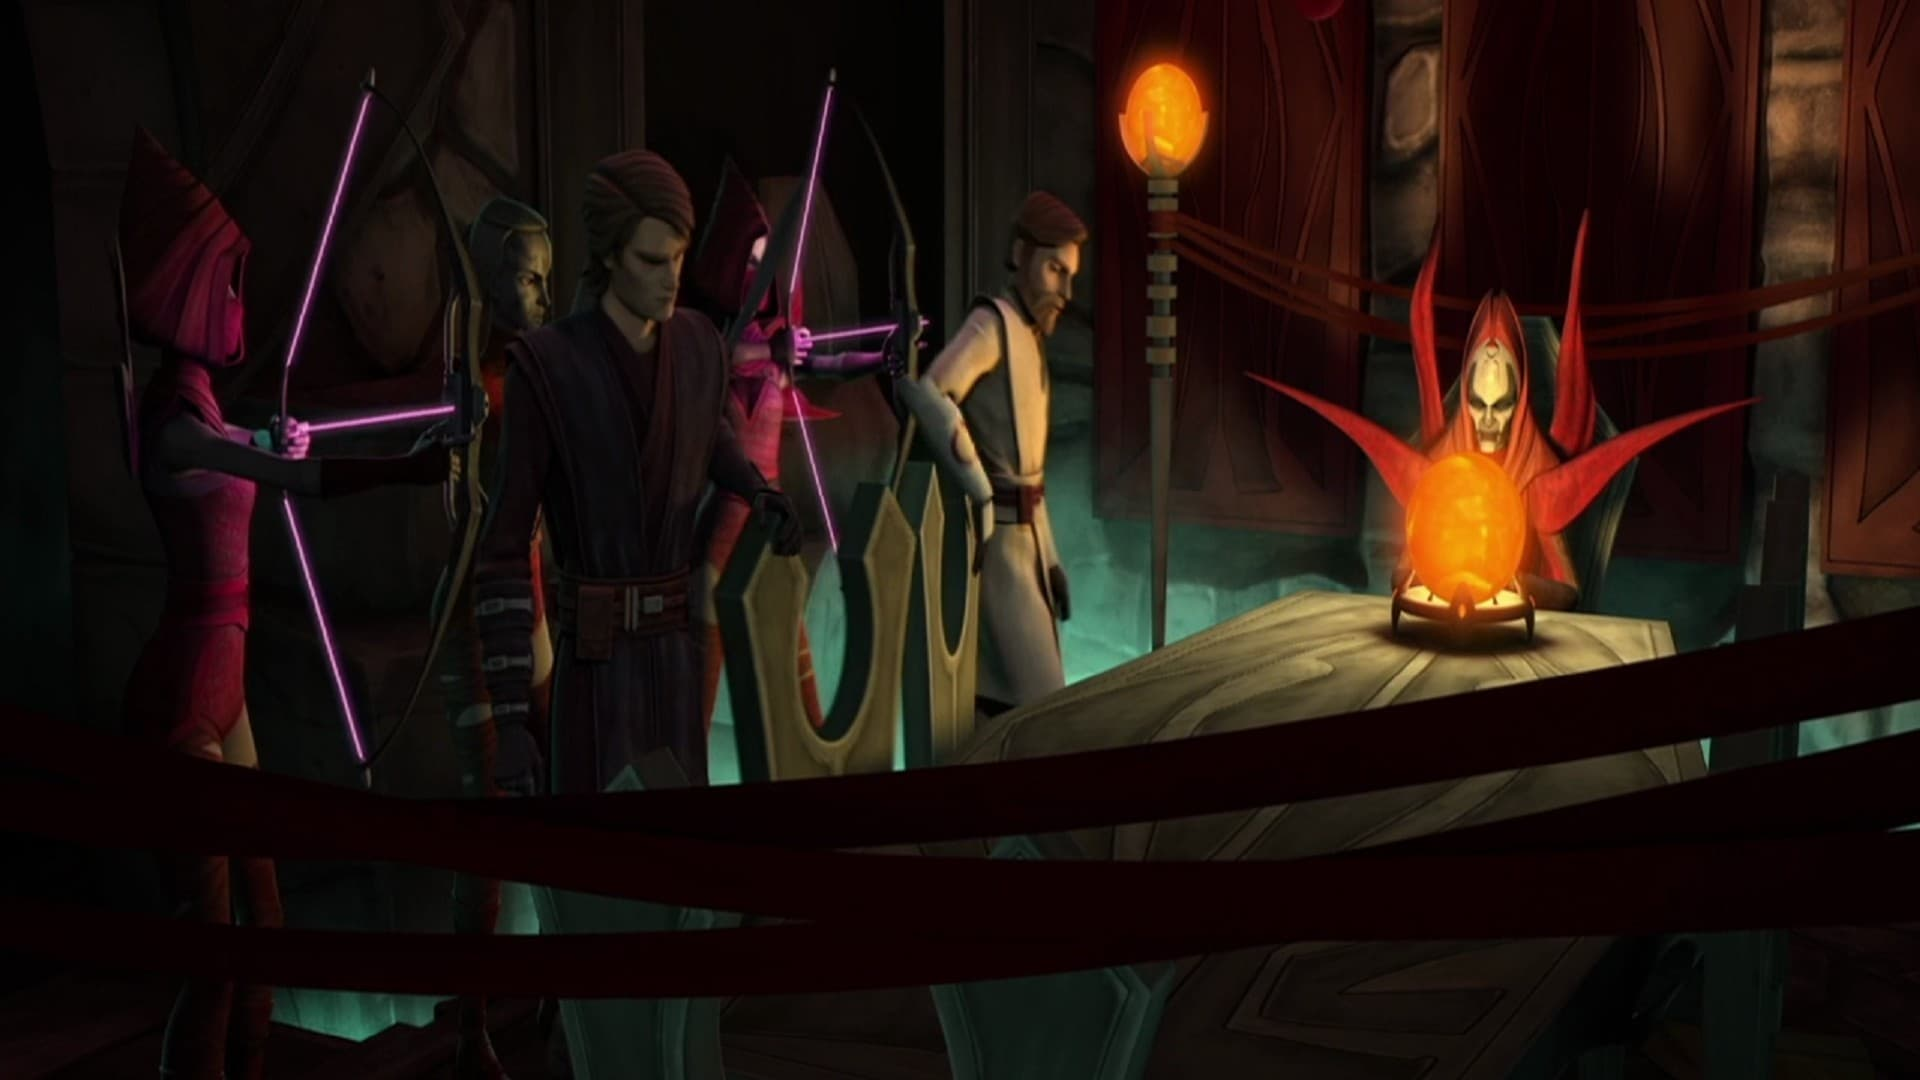 Star Wars: The Clone Wars - Season 3 Episode 14 : Witches of the Mist